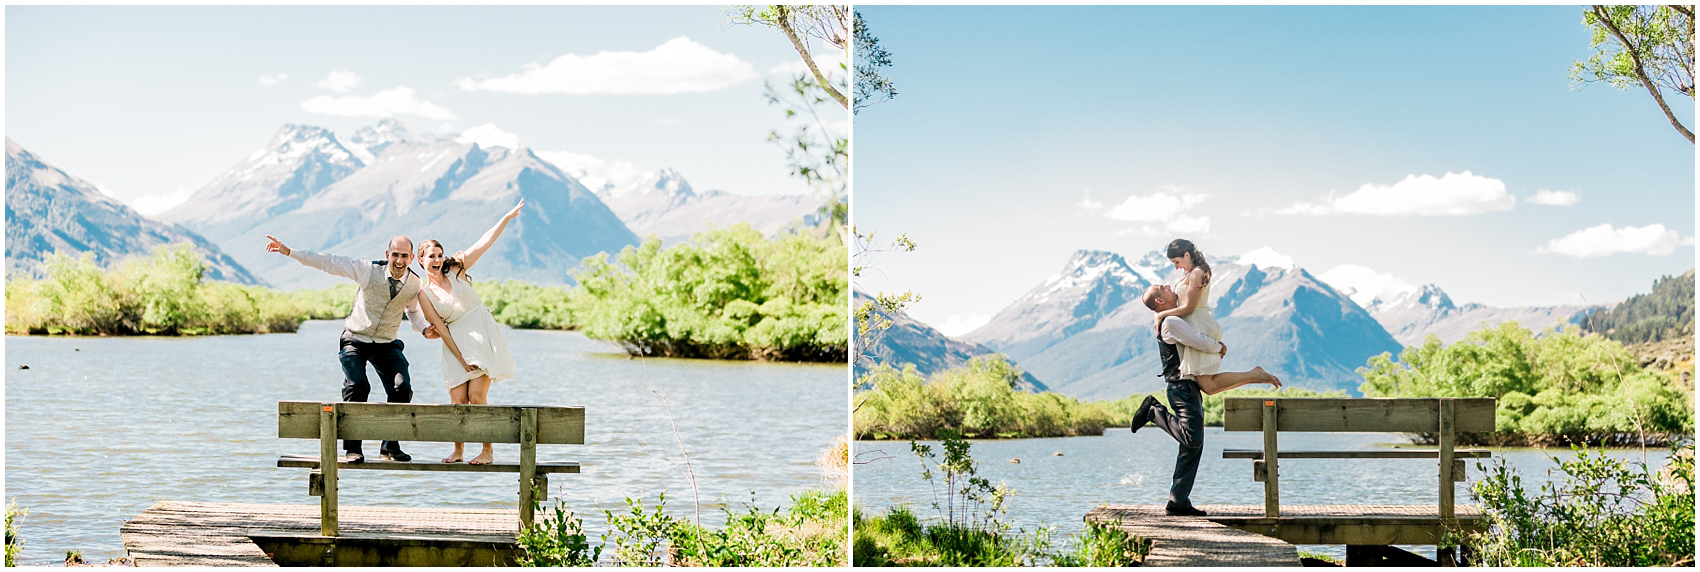 Queenstown New Zealand Wedding Photographer Bruna Fabricio Smetona Photo-0044.jpg